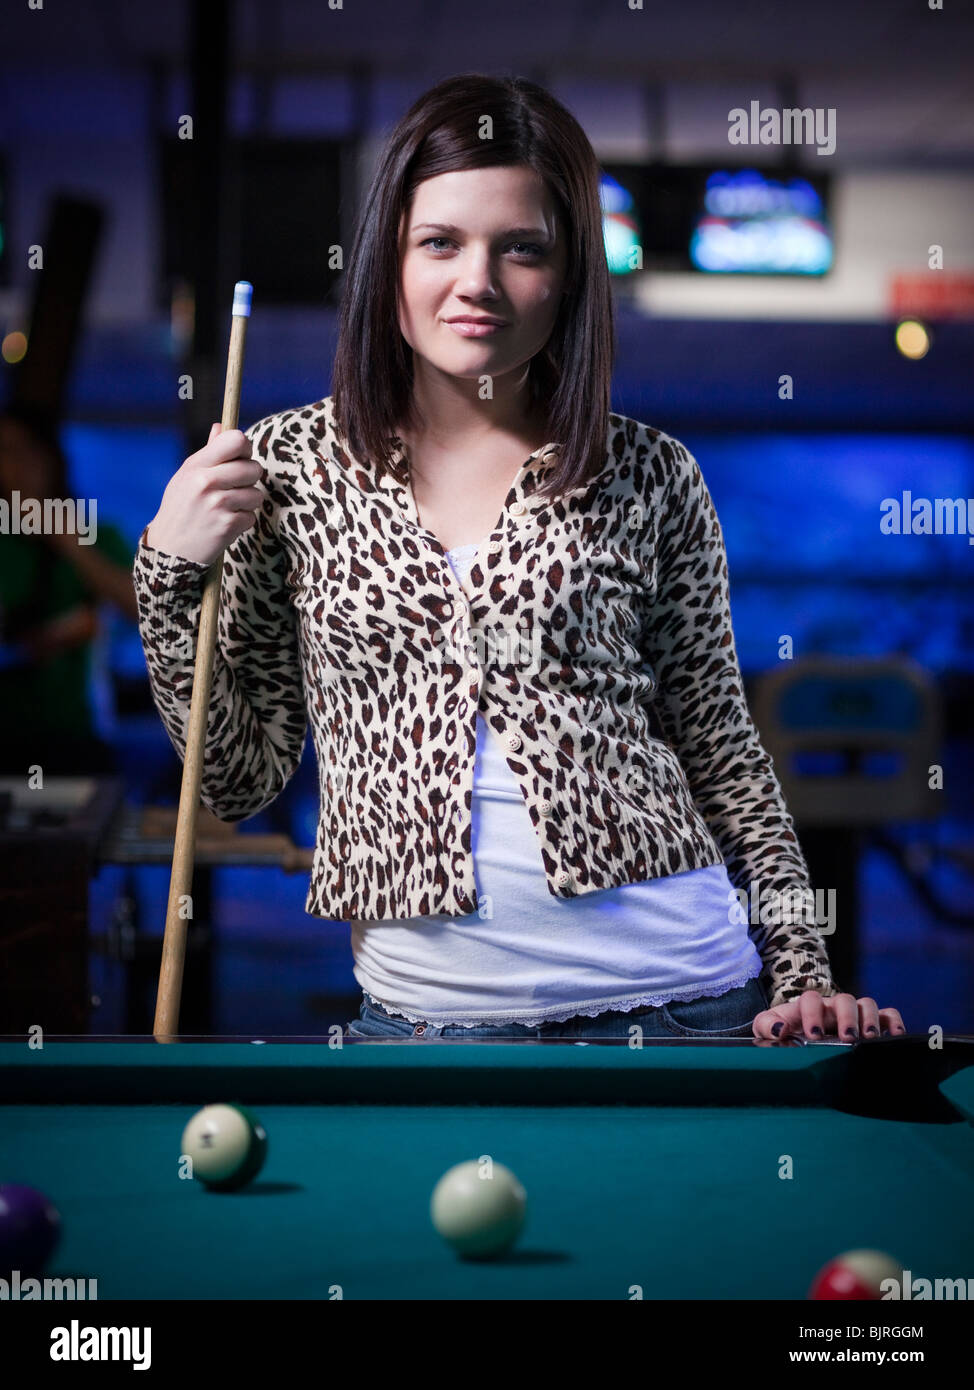 USA, Utah, American Fork, young woman standing behind pool table Stock Photo